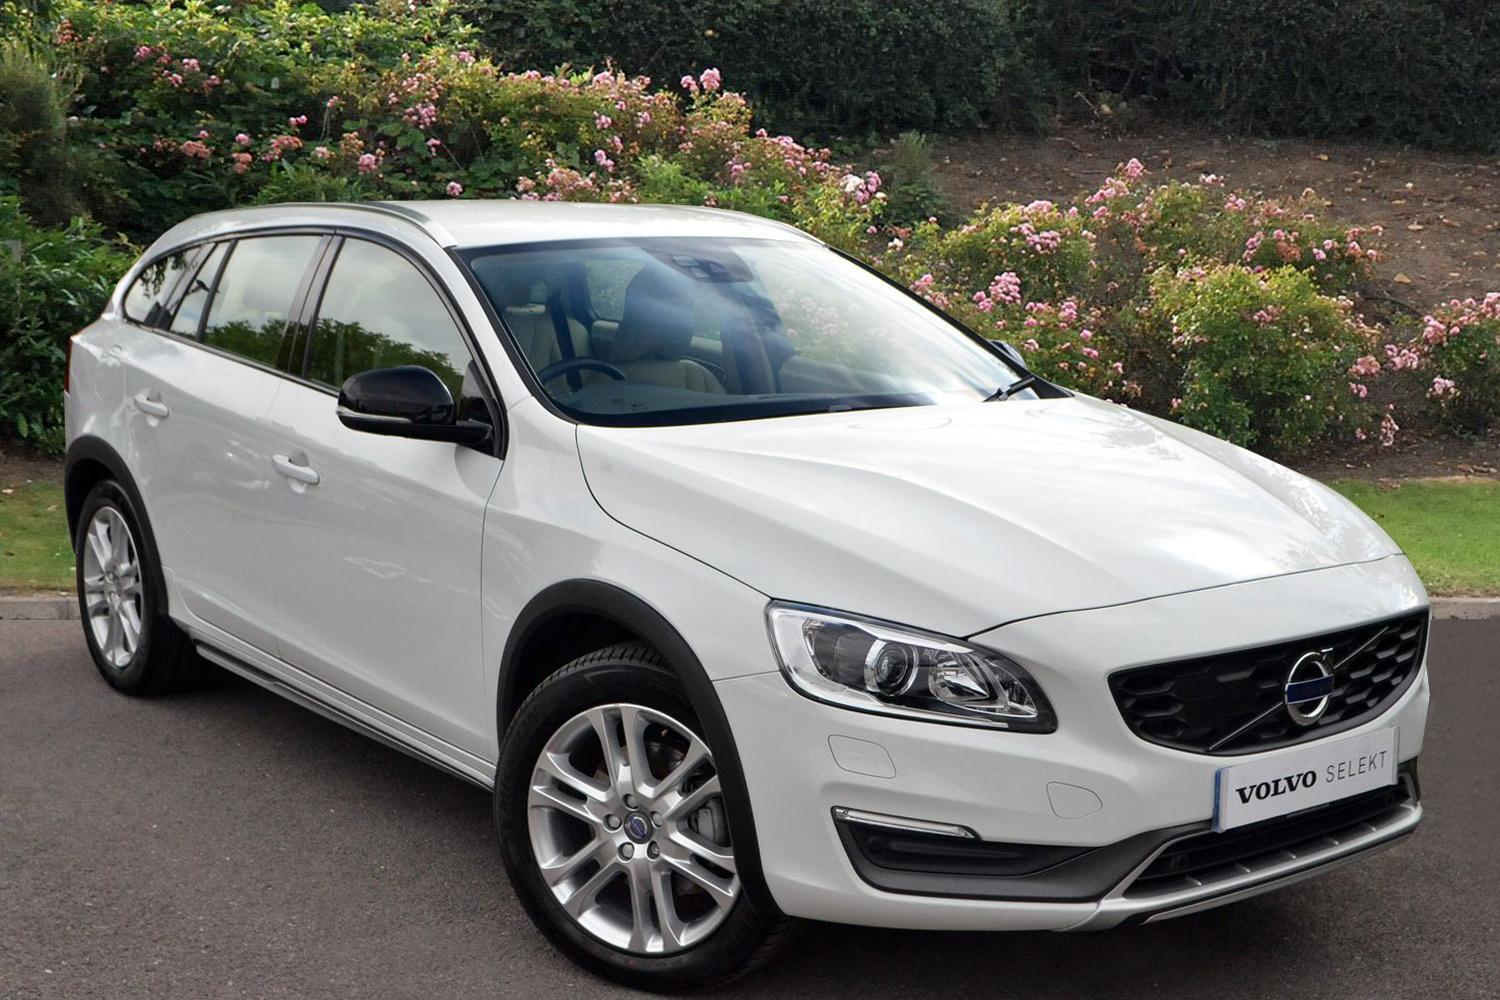 used volvo v60 d4 190 cross country lux nav 5dr awd geartronic diesel estate for sale. Black Bedroom Furniture Sets. Home Design Ideas